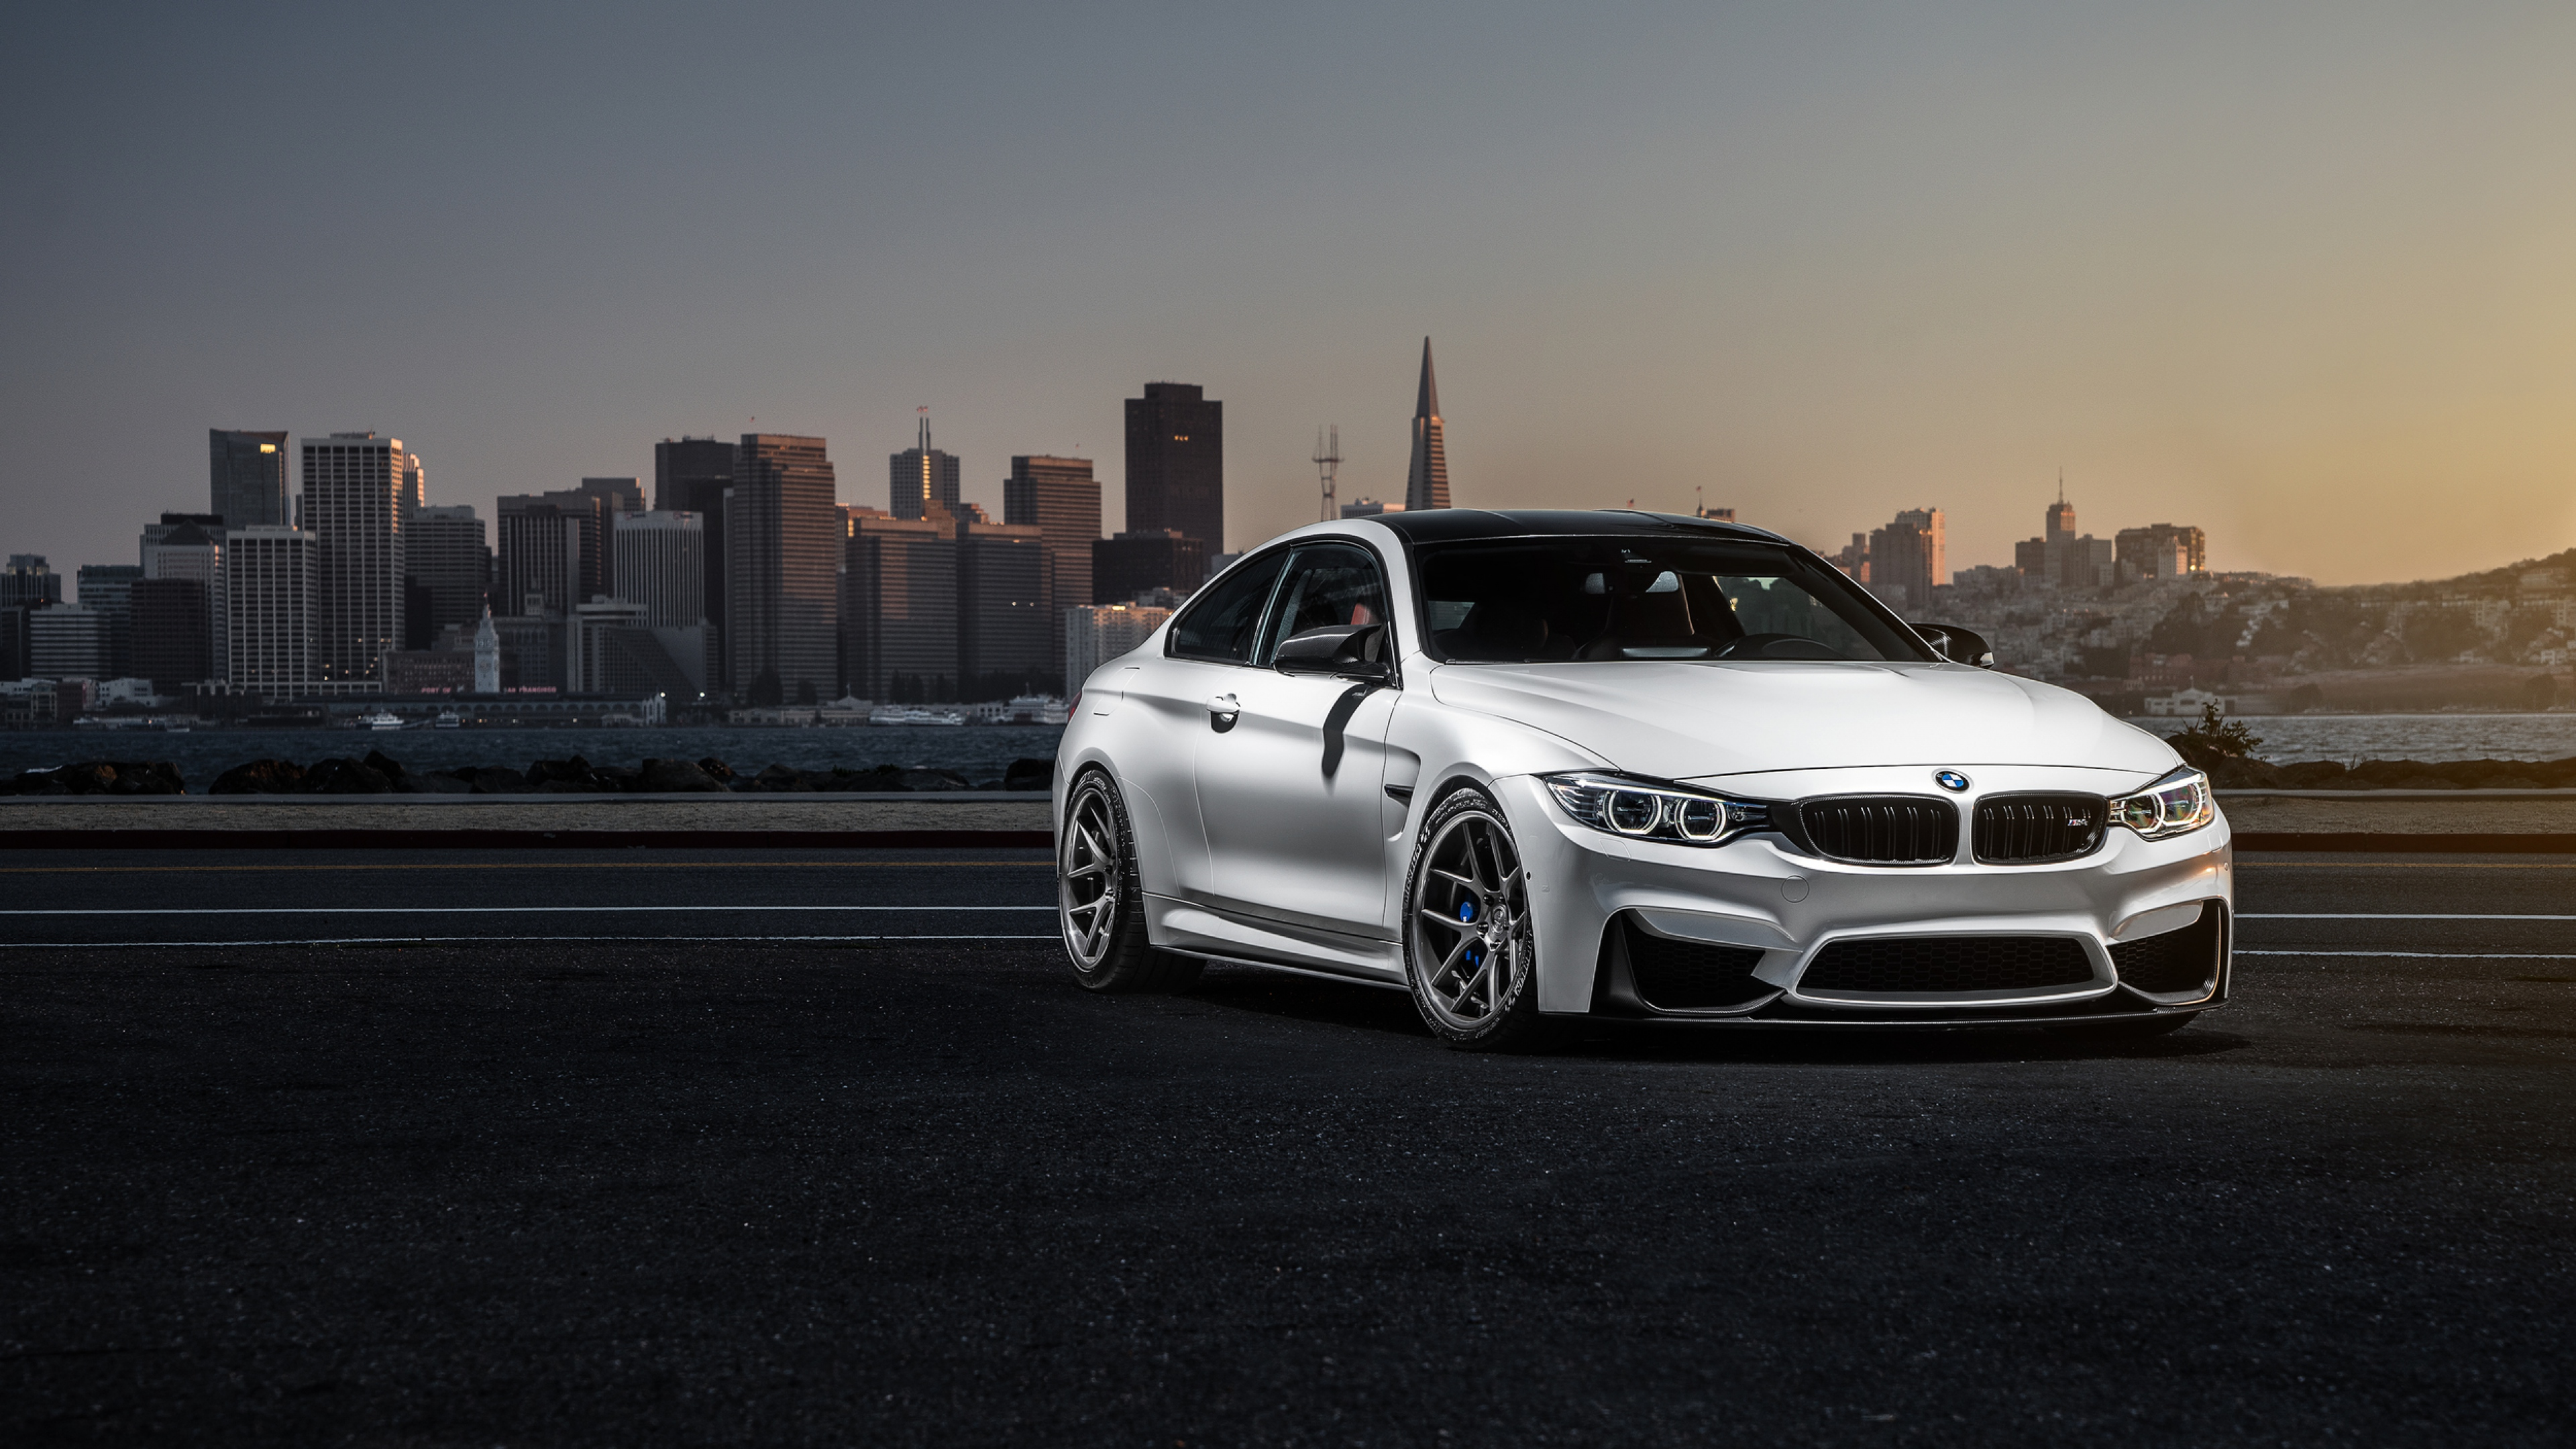 Bmw M4 Hd Cars 4k Wallpapers Images Backgrounds Photos And Pictures